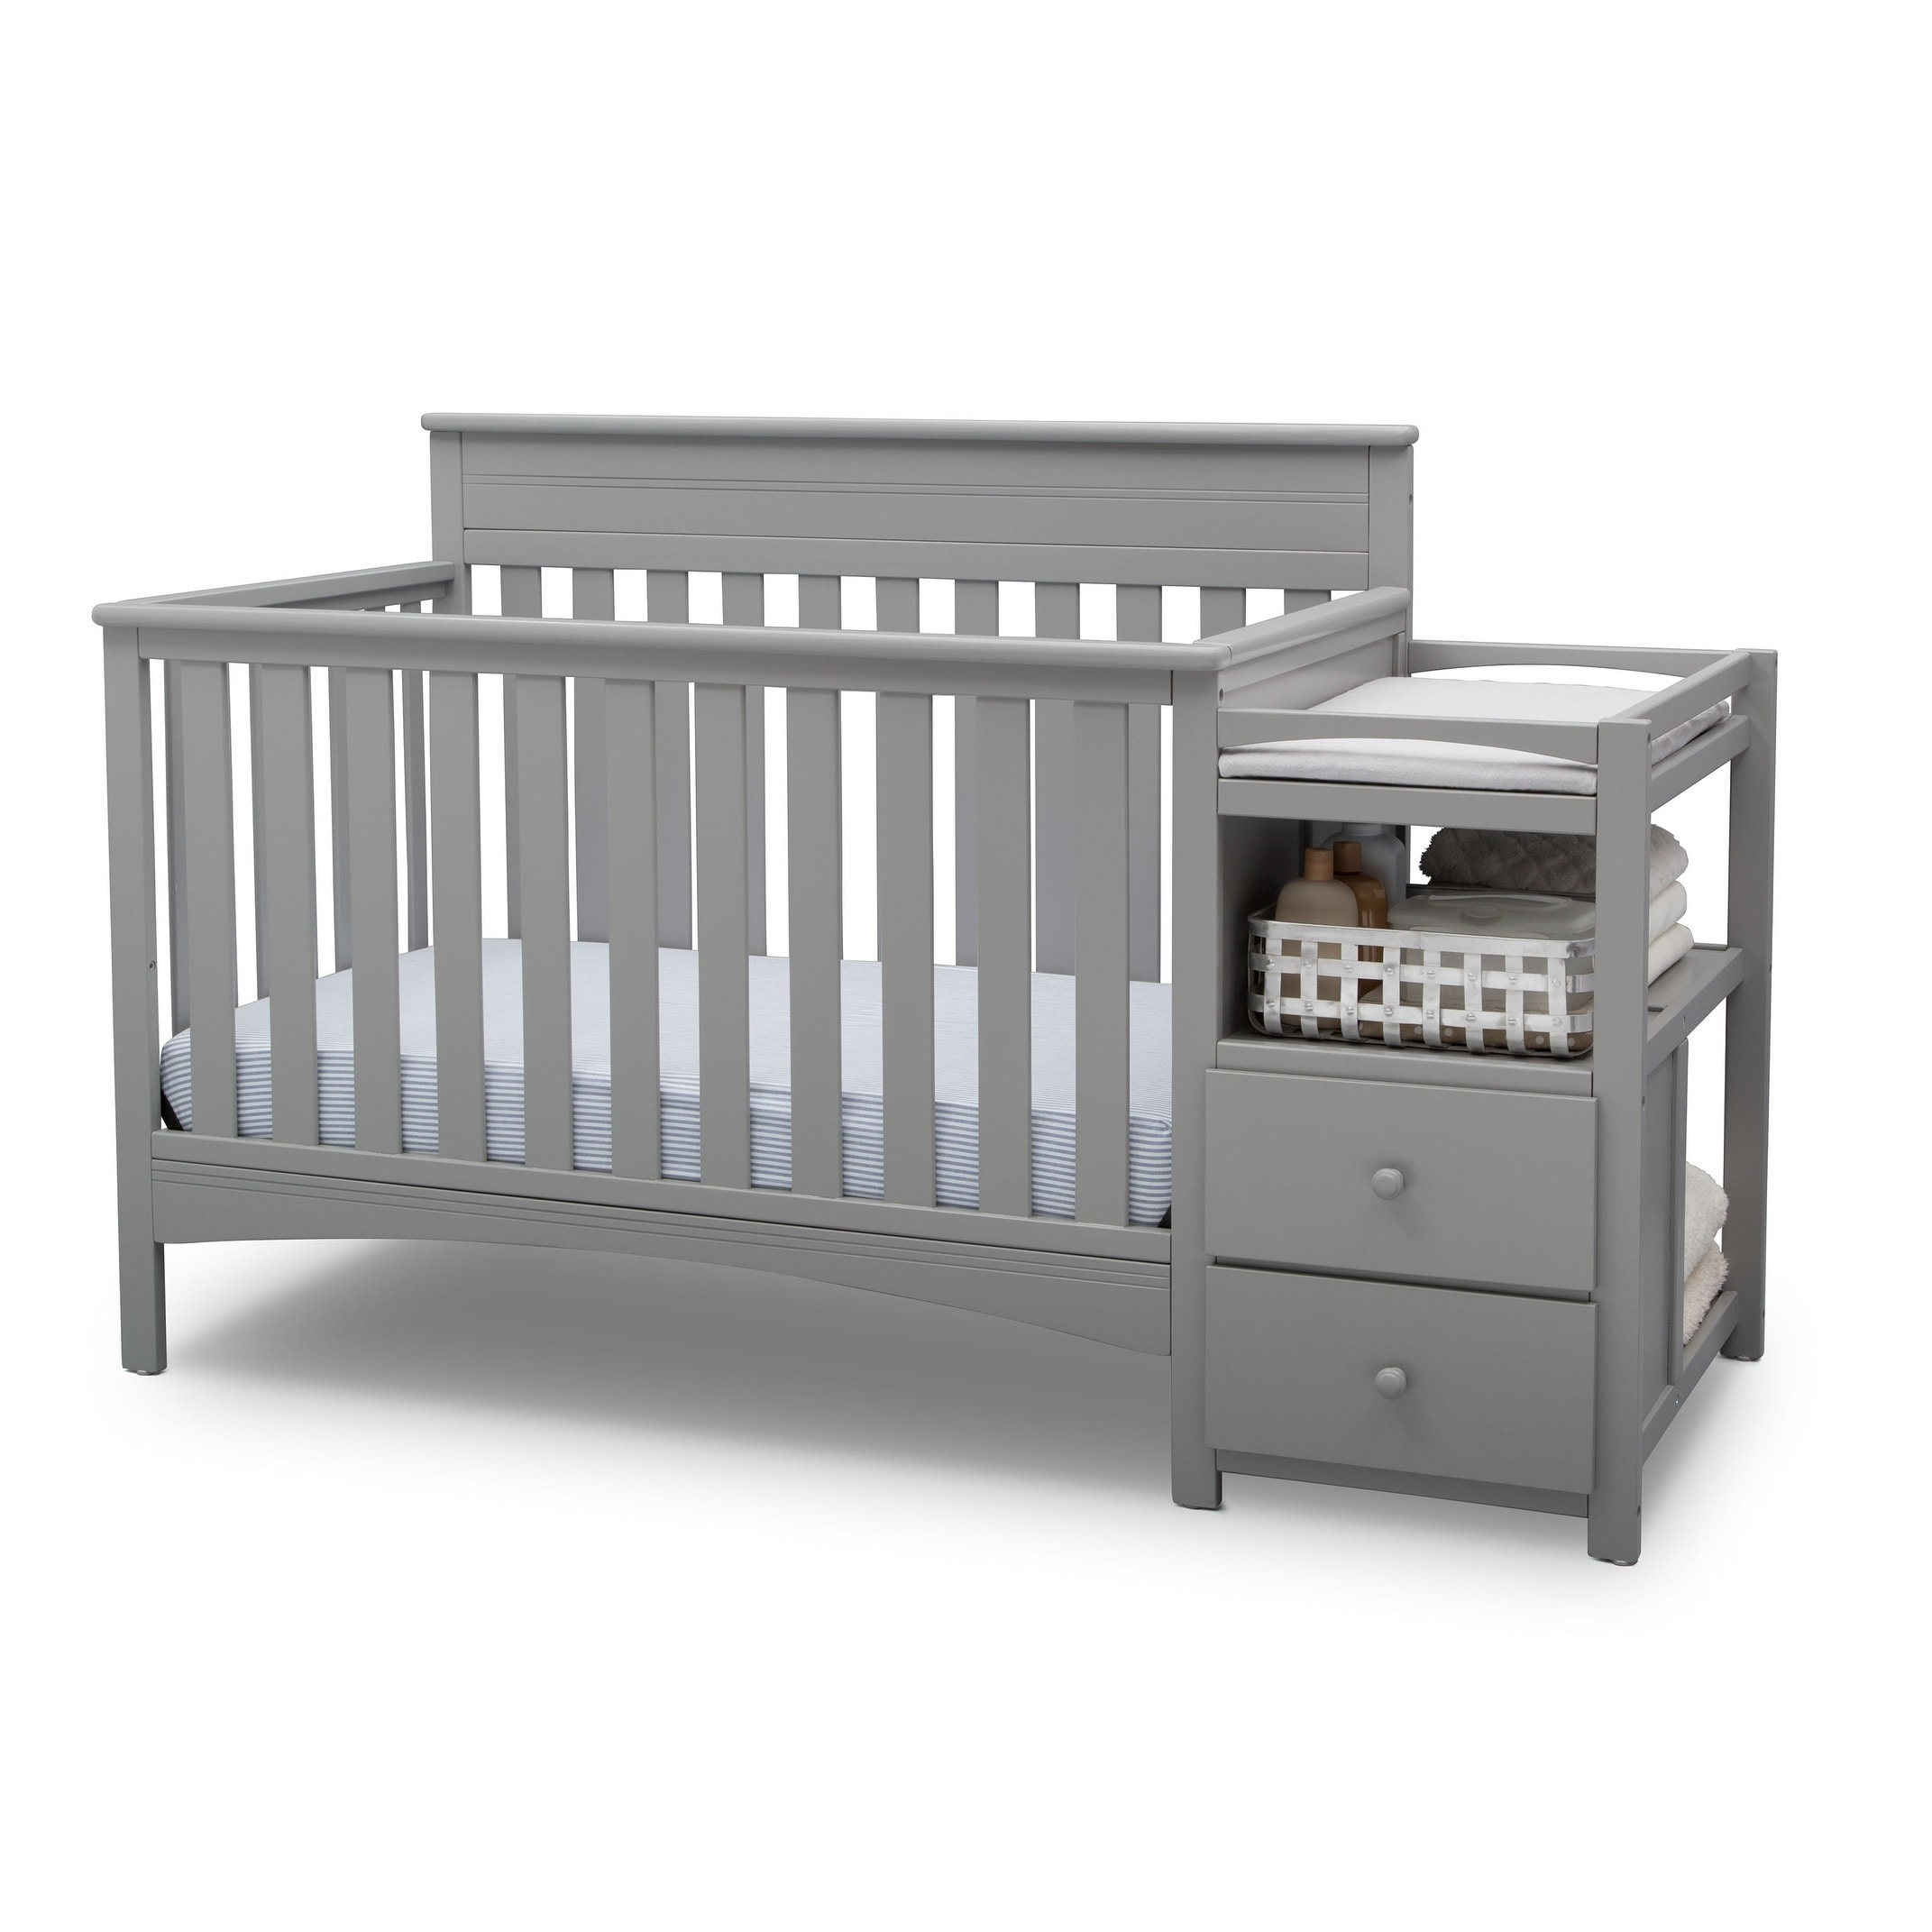 cribs euro all london shapely plus crib f convertible craft splendid rc child calmly coventry sophisticated